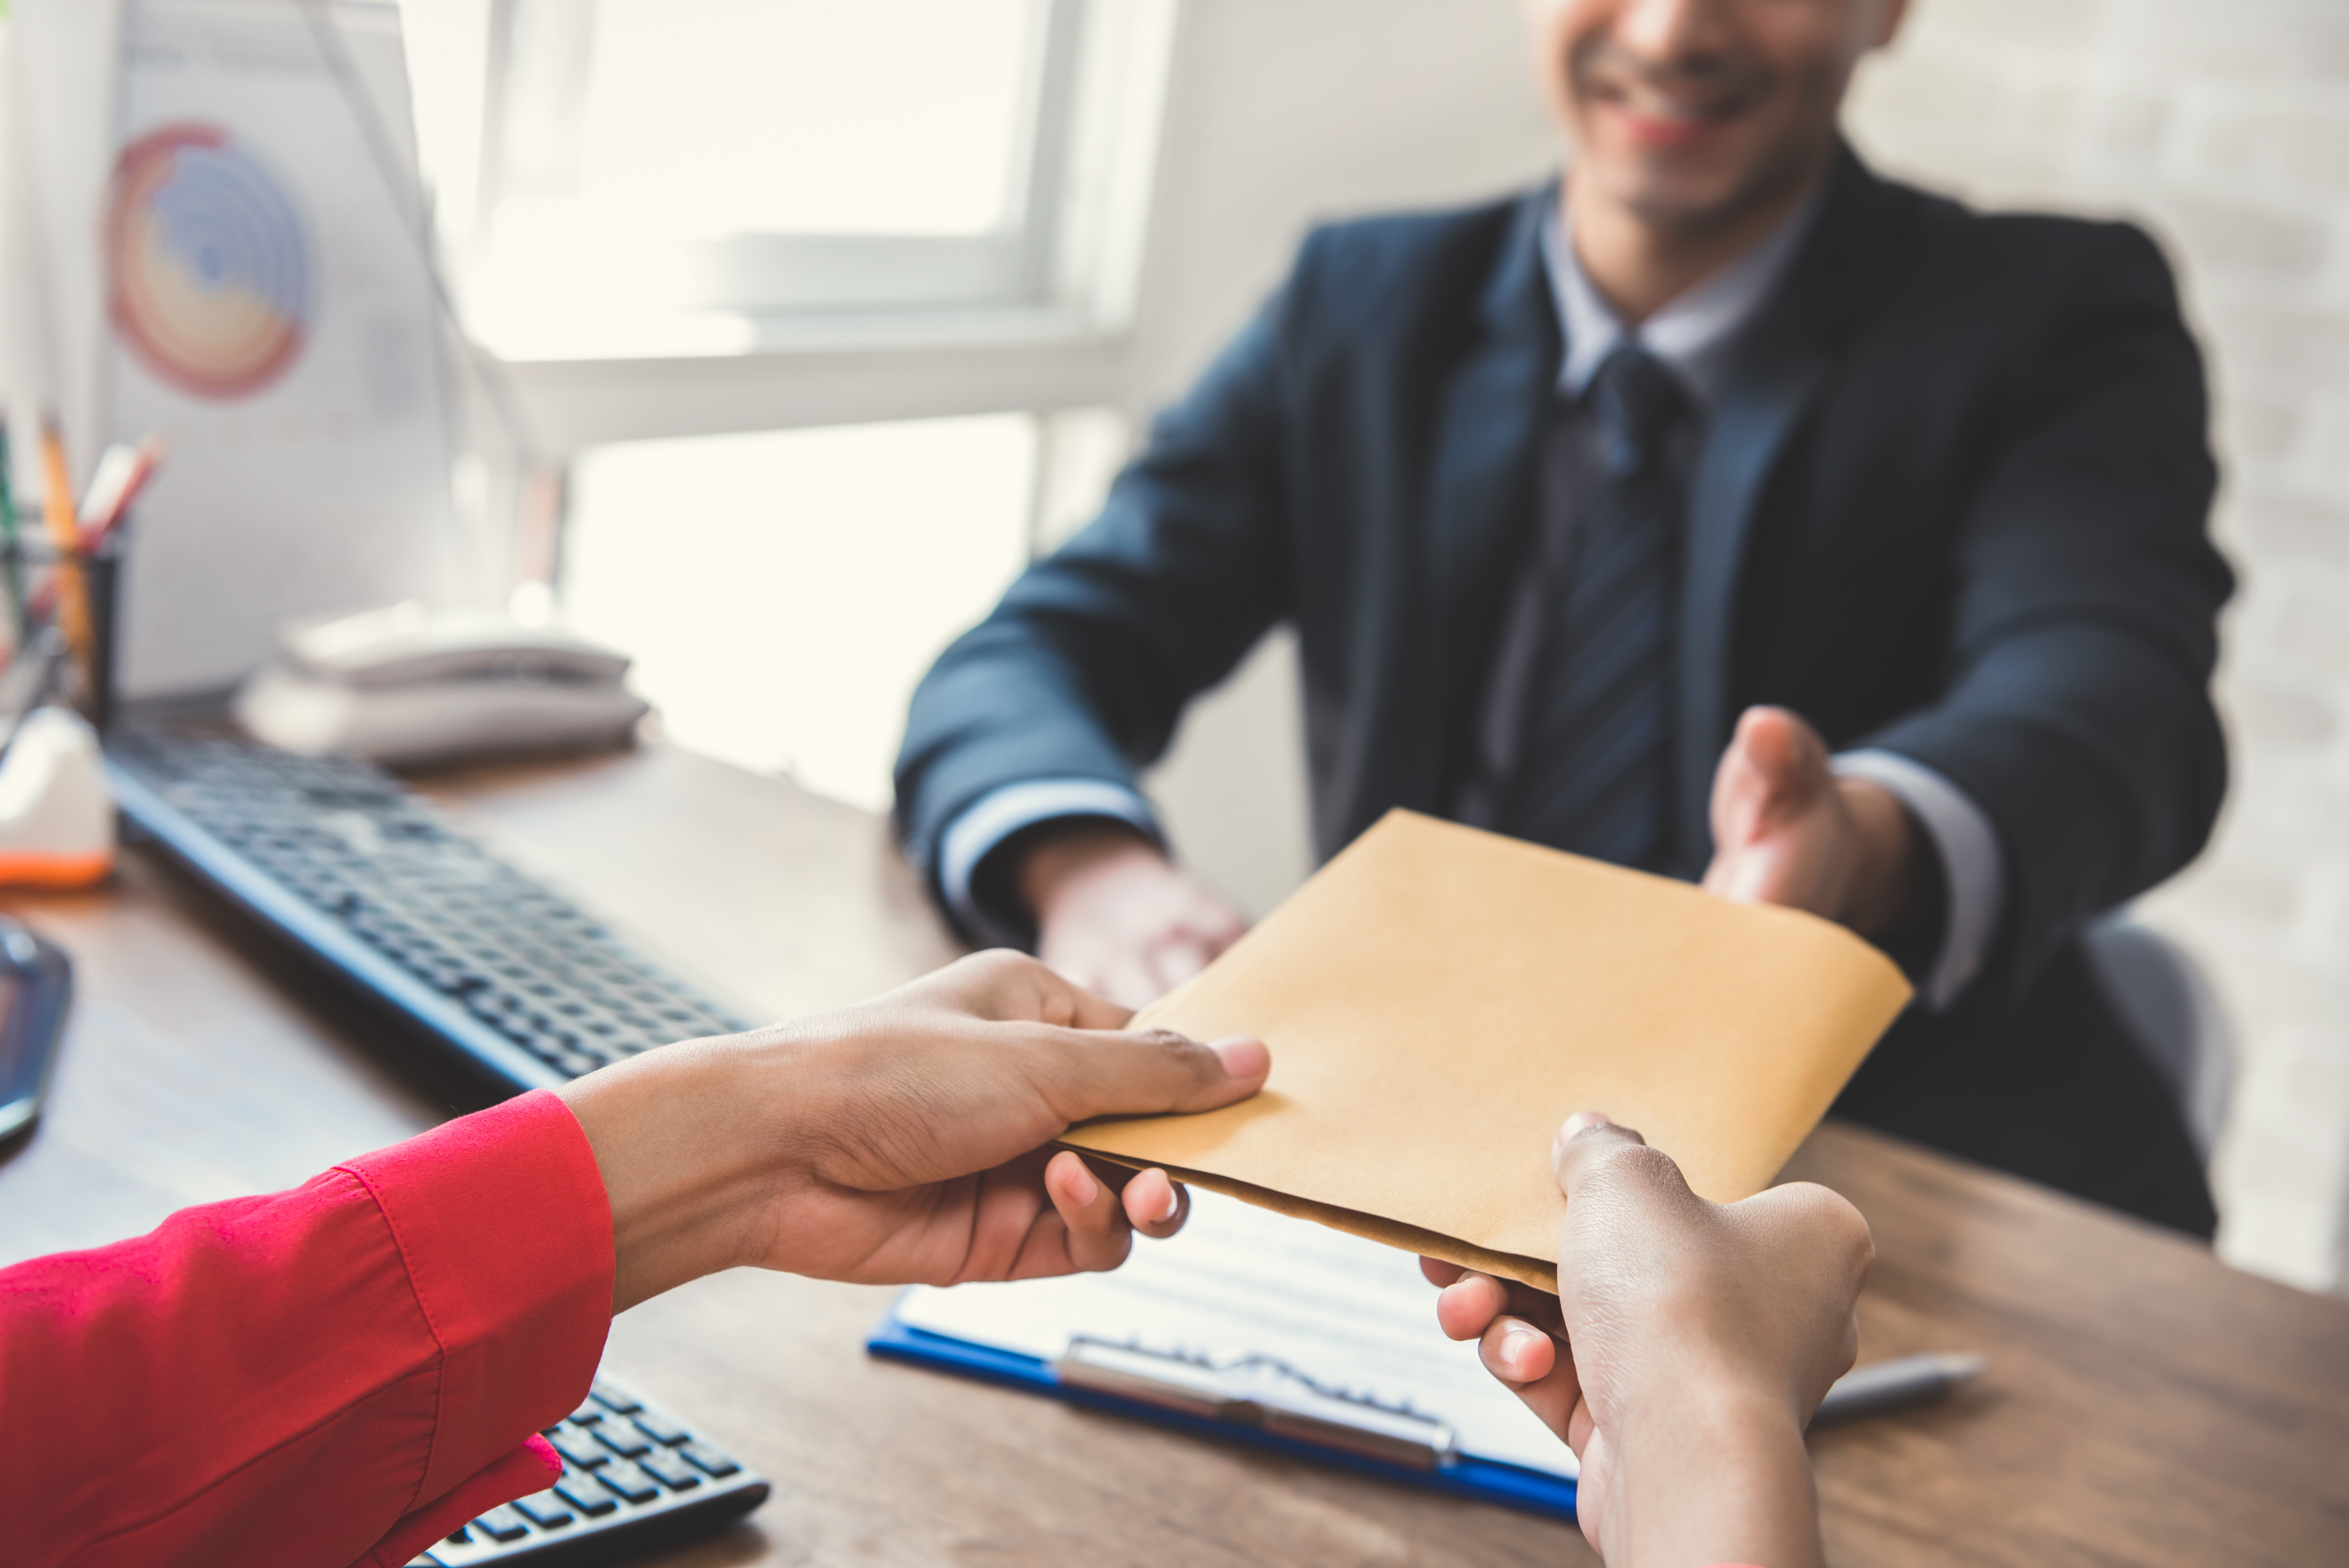 Business man handing documents to woman. Judicial Research provides the Best in Litigation support with: Printing, E Paper Discovery, Document Scanning, Indexing, Mounting, Duplication, Labeling ...